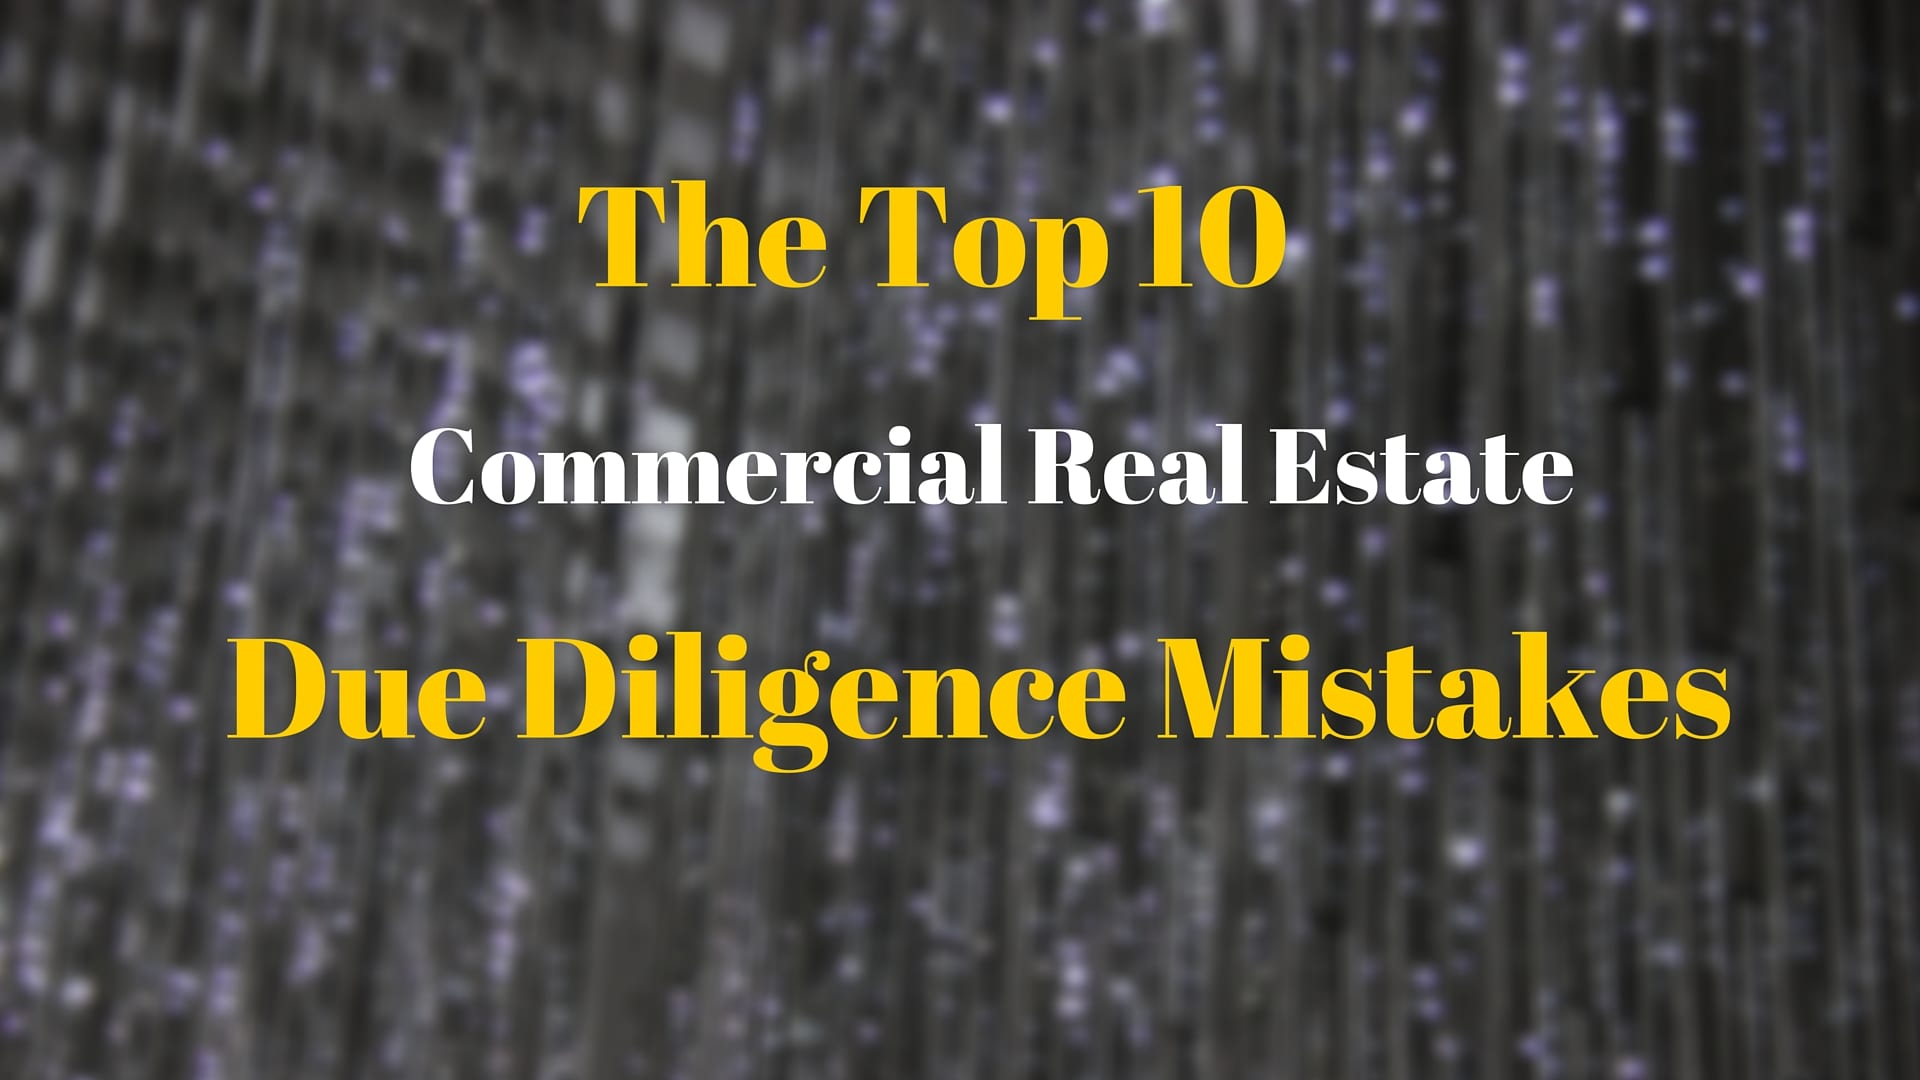 The Top 10 Commercial Real Estate Due Diligence Mistakes